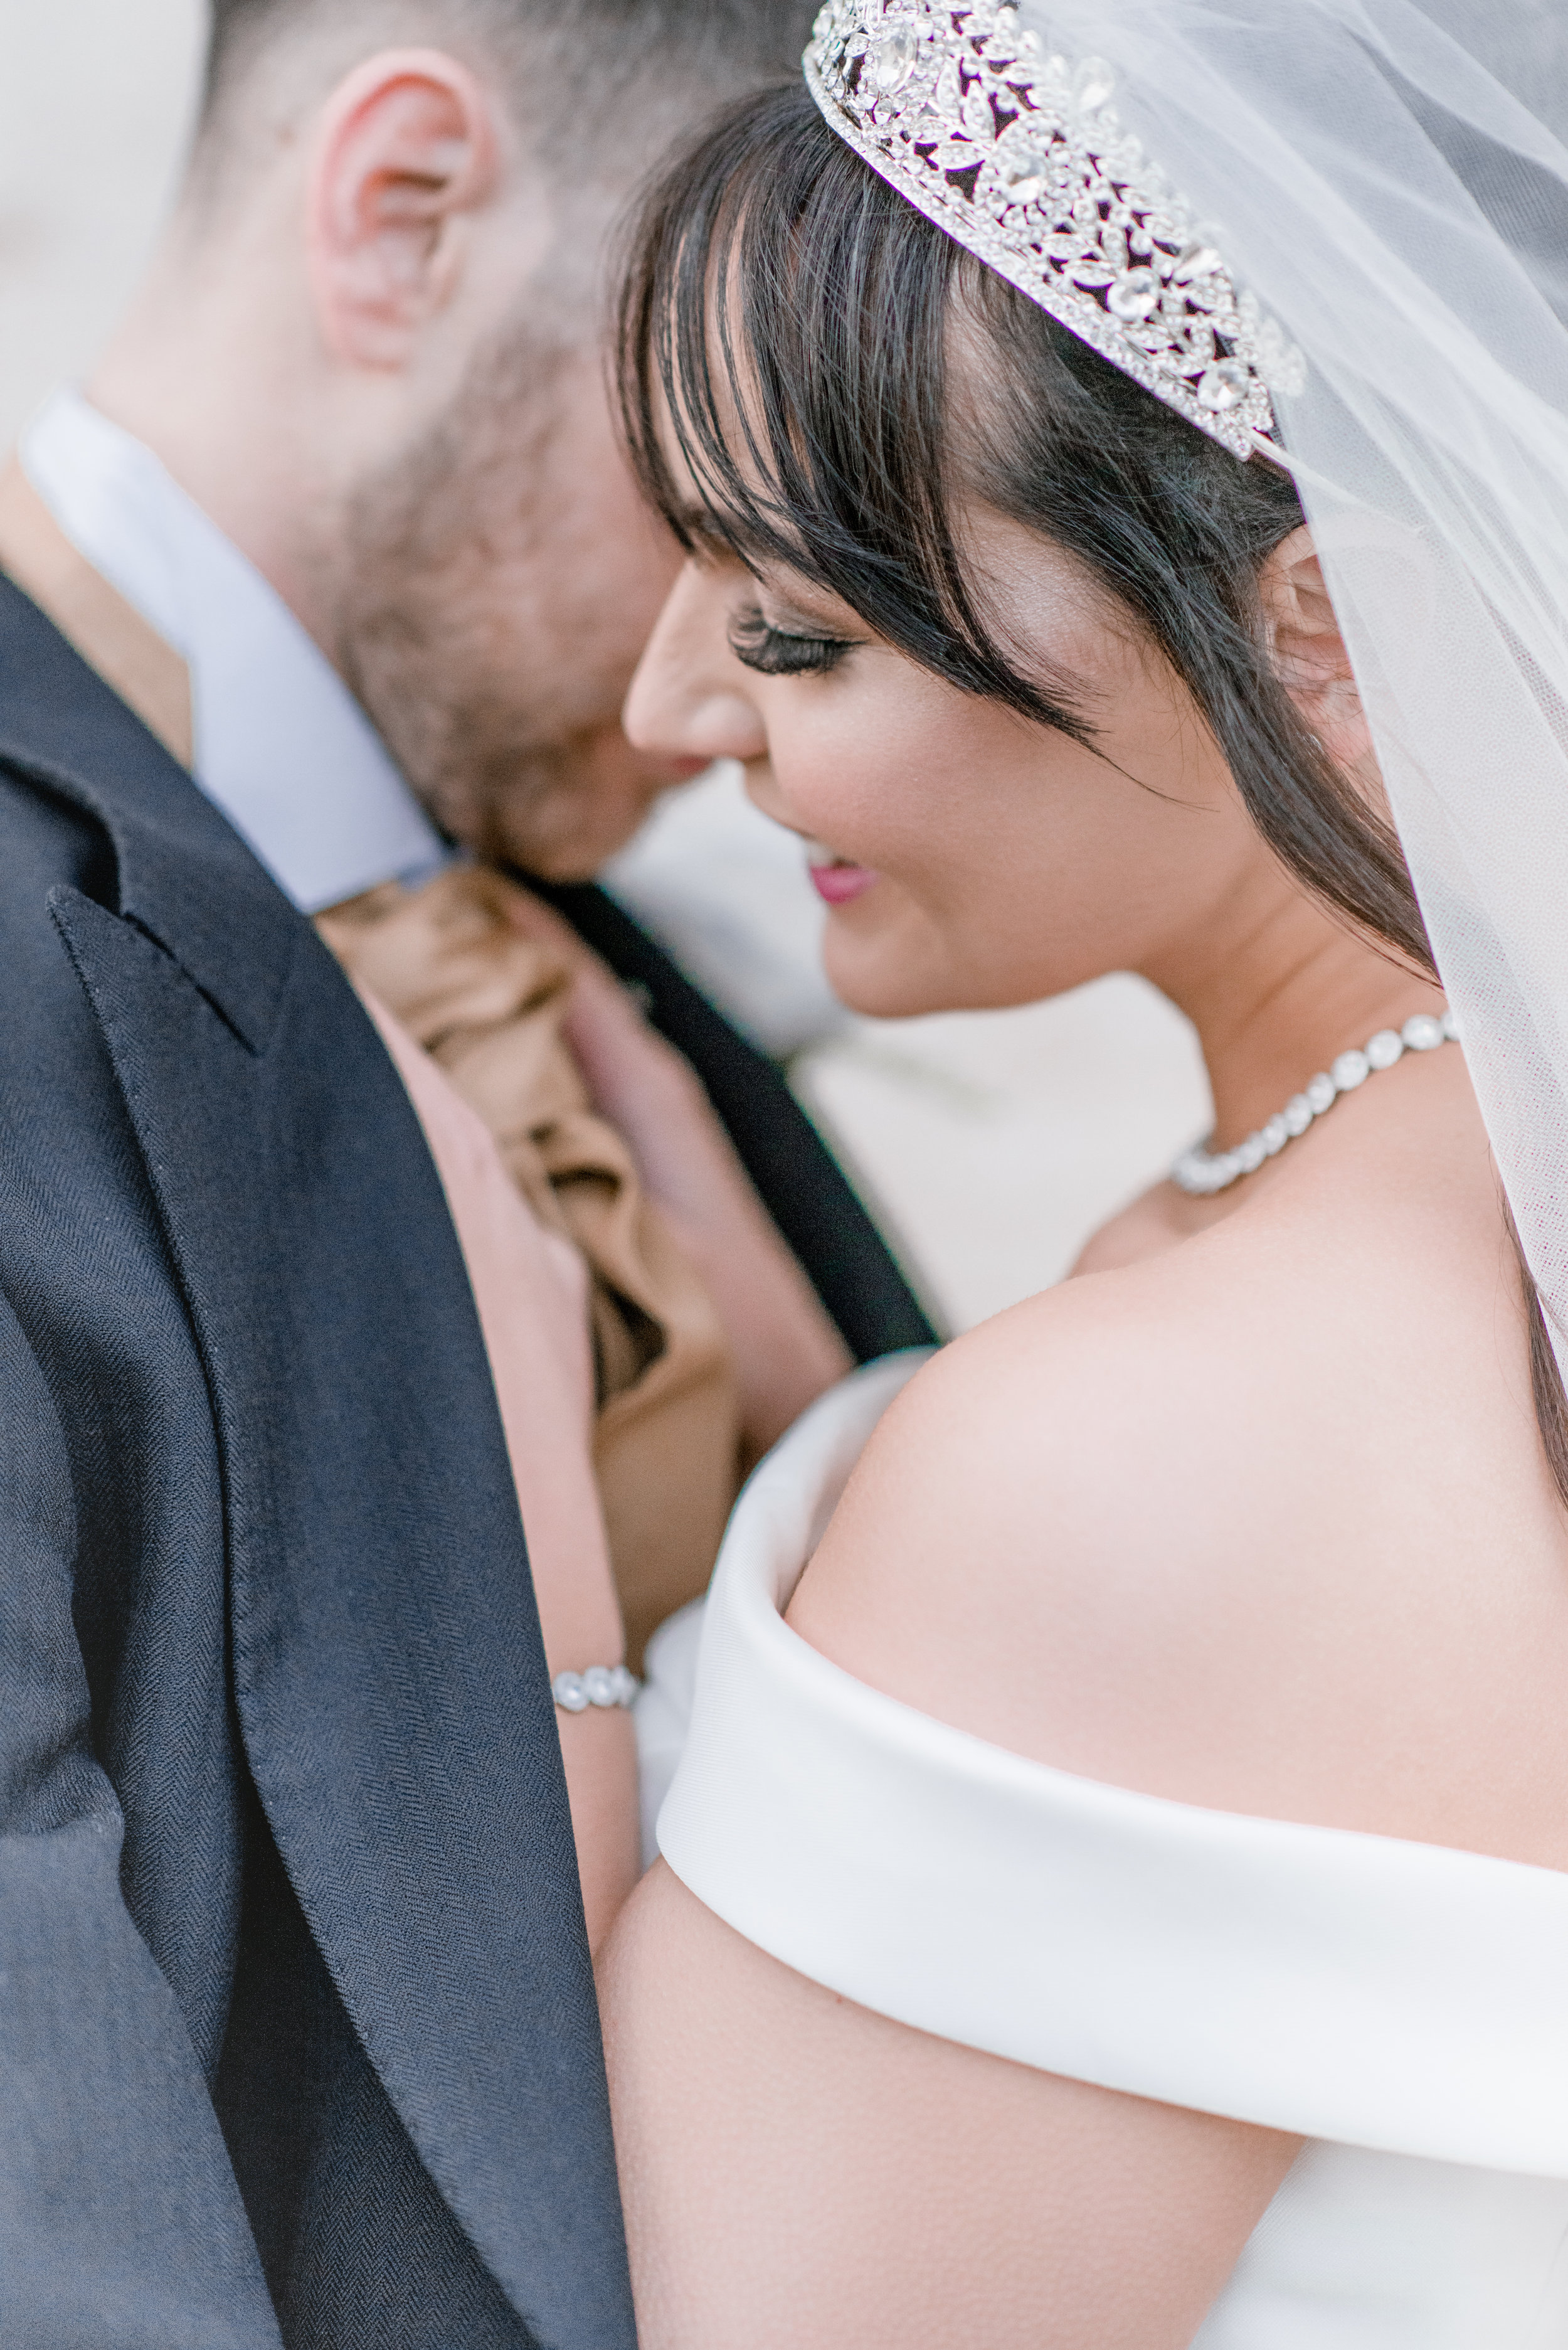 Emily and Aaron got married at the amazing Stapleford Hall